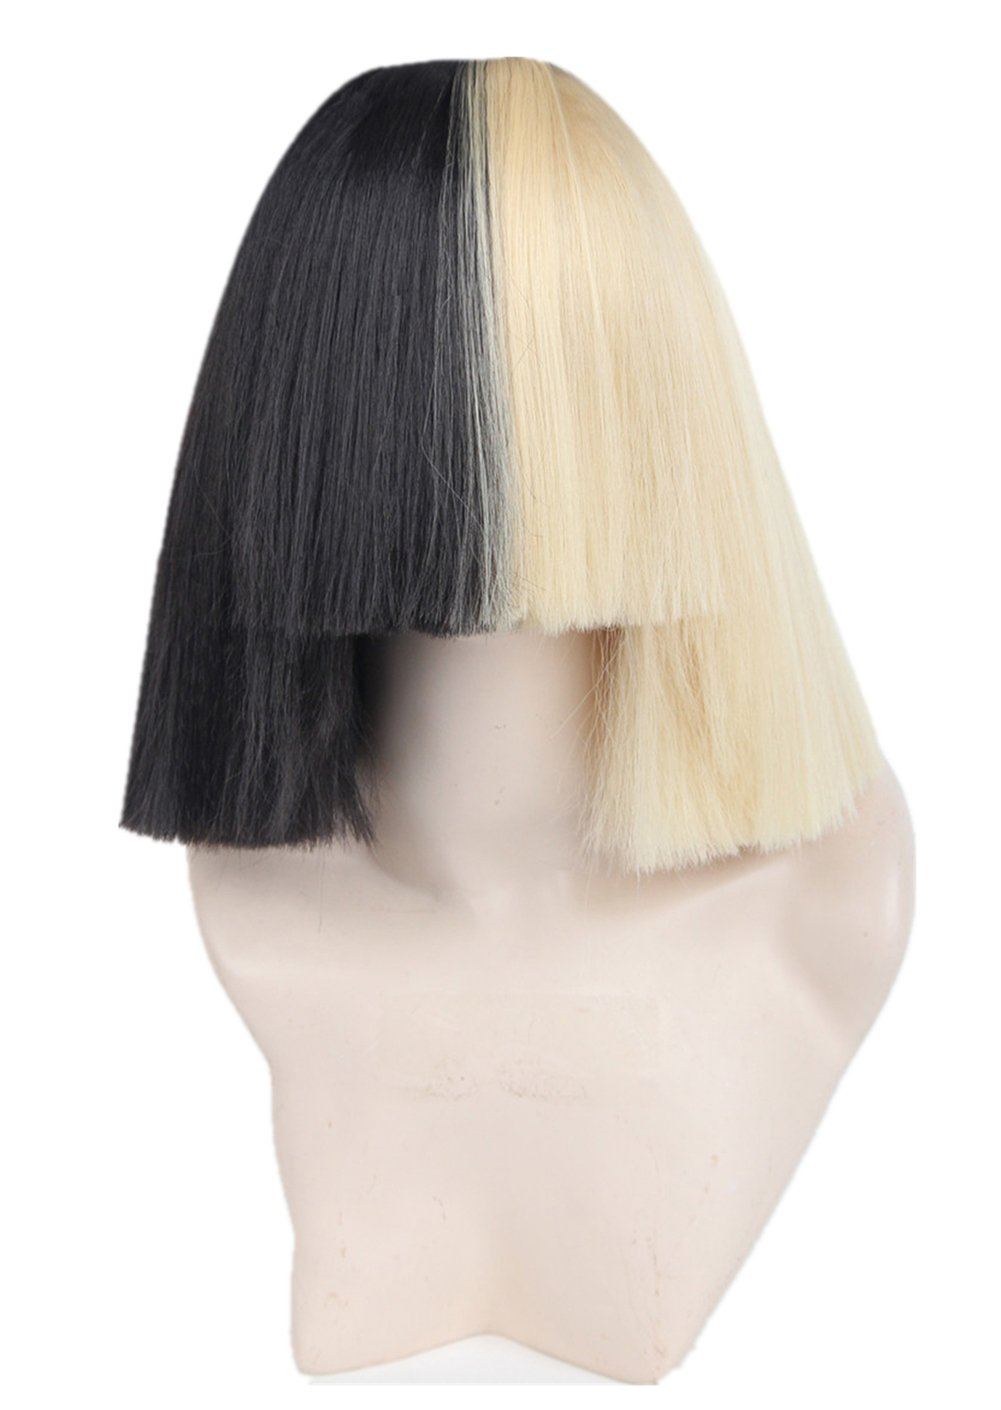 Half Blonde and Black 2 Tone Hair Short Straight Cosplay Costume Wig for Women (only wig) Topcosplay